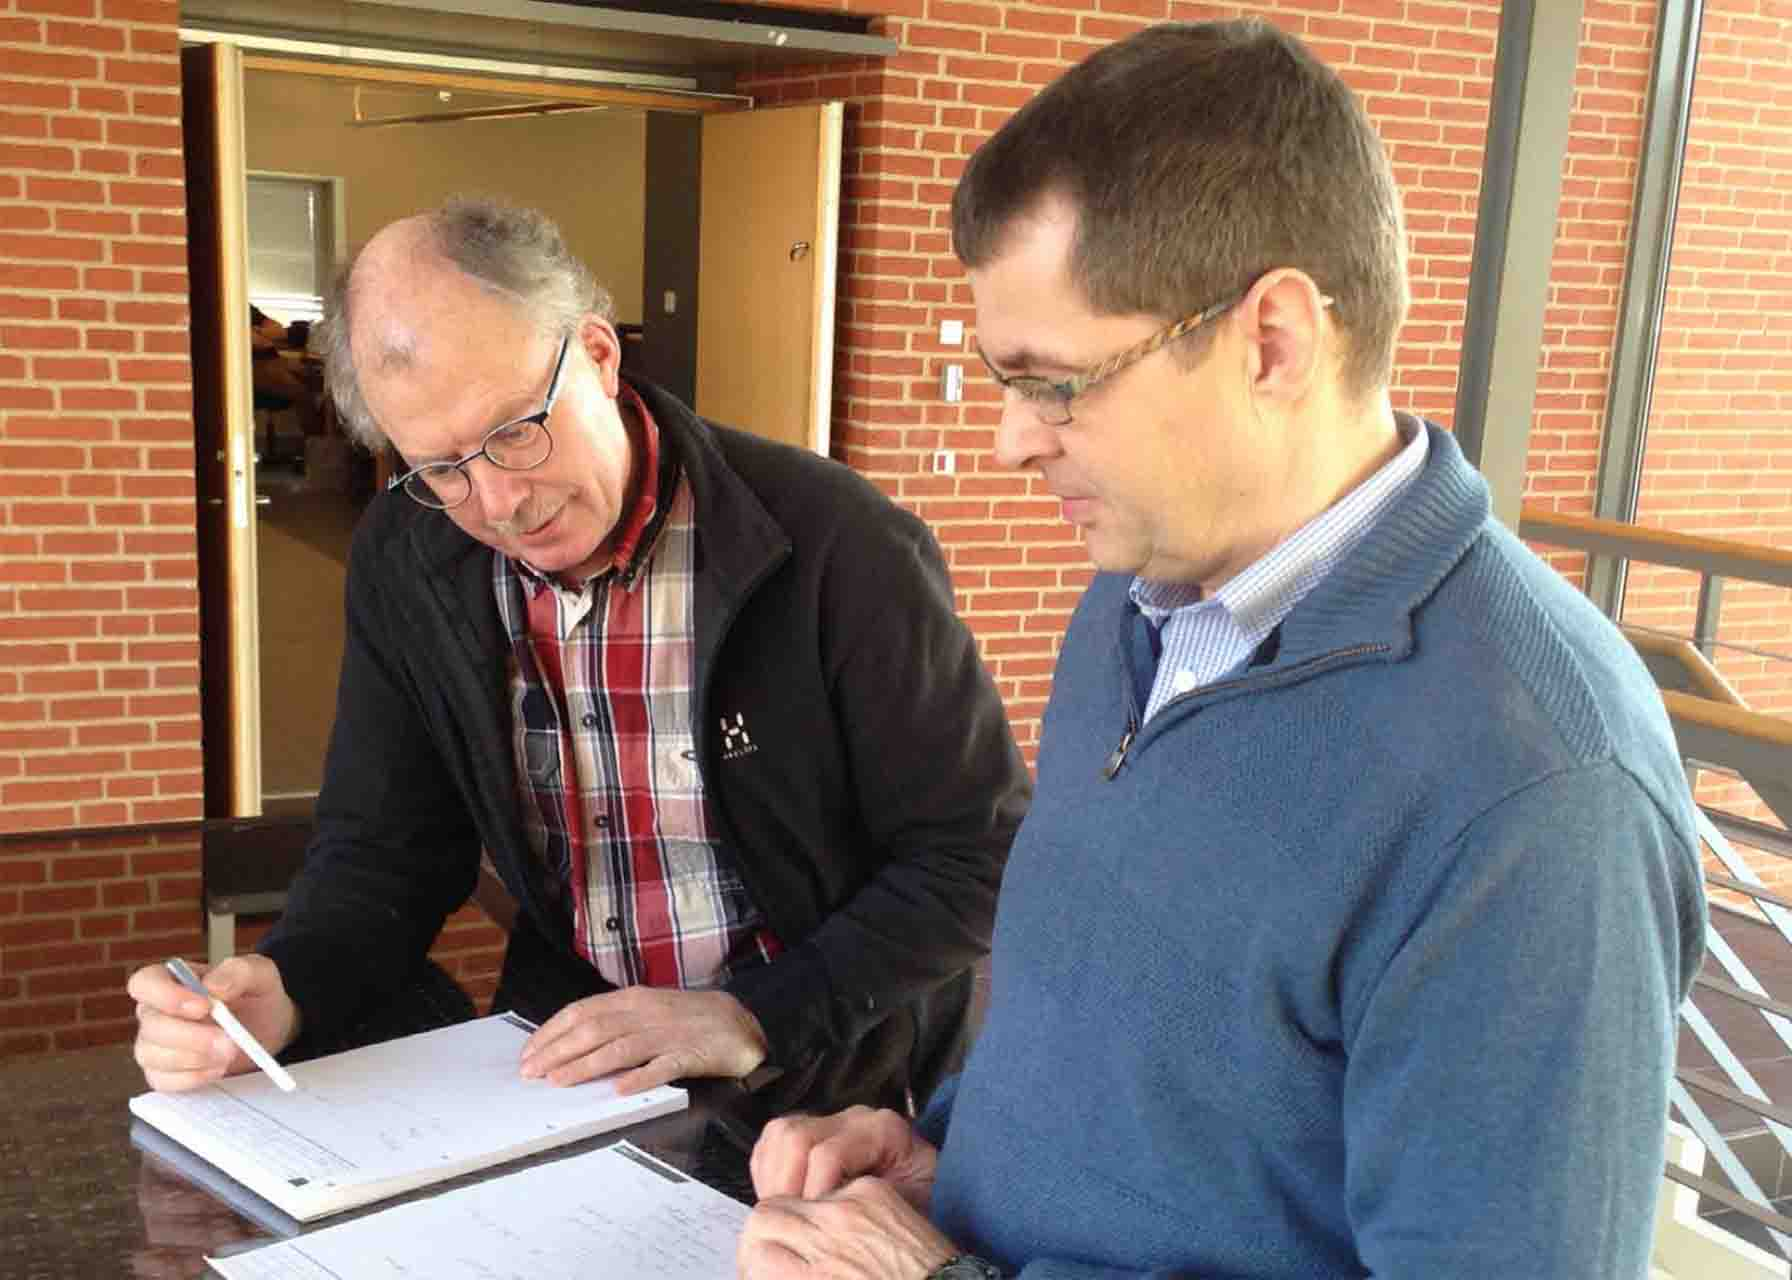 Jan Ravn and John Sorensen, Herning Vand, assess the collected information.